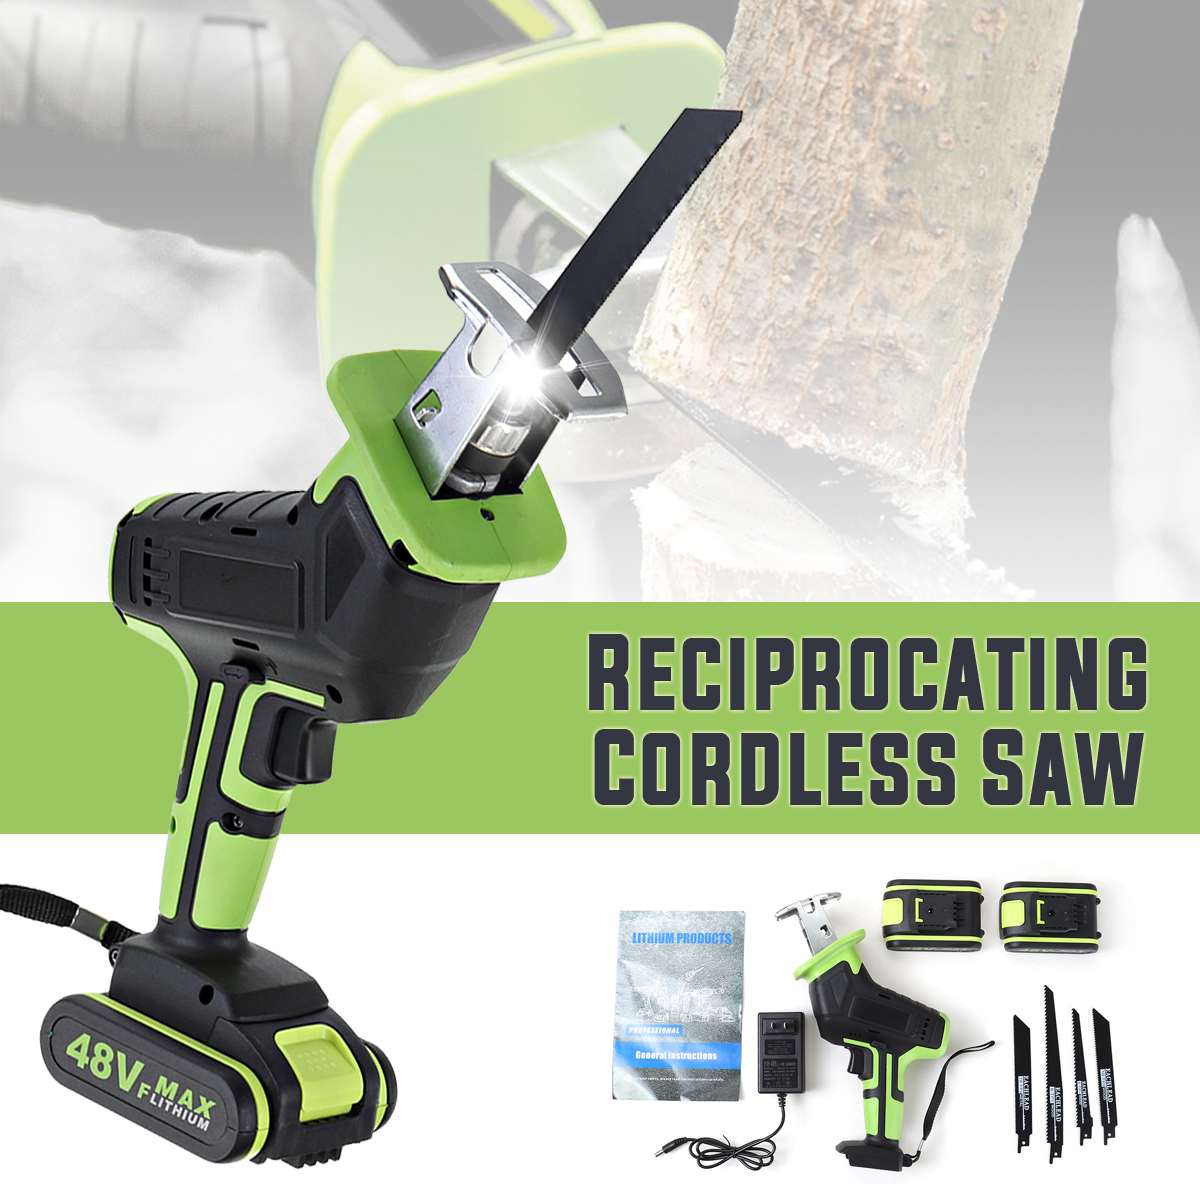 24V Cordless Reciprocating Saw +4 Saw blades Metal Cutting Wood Tool Portable Woodworking Cutters With 1/2 Battery New